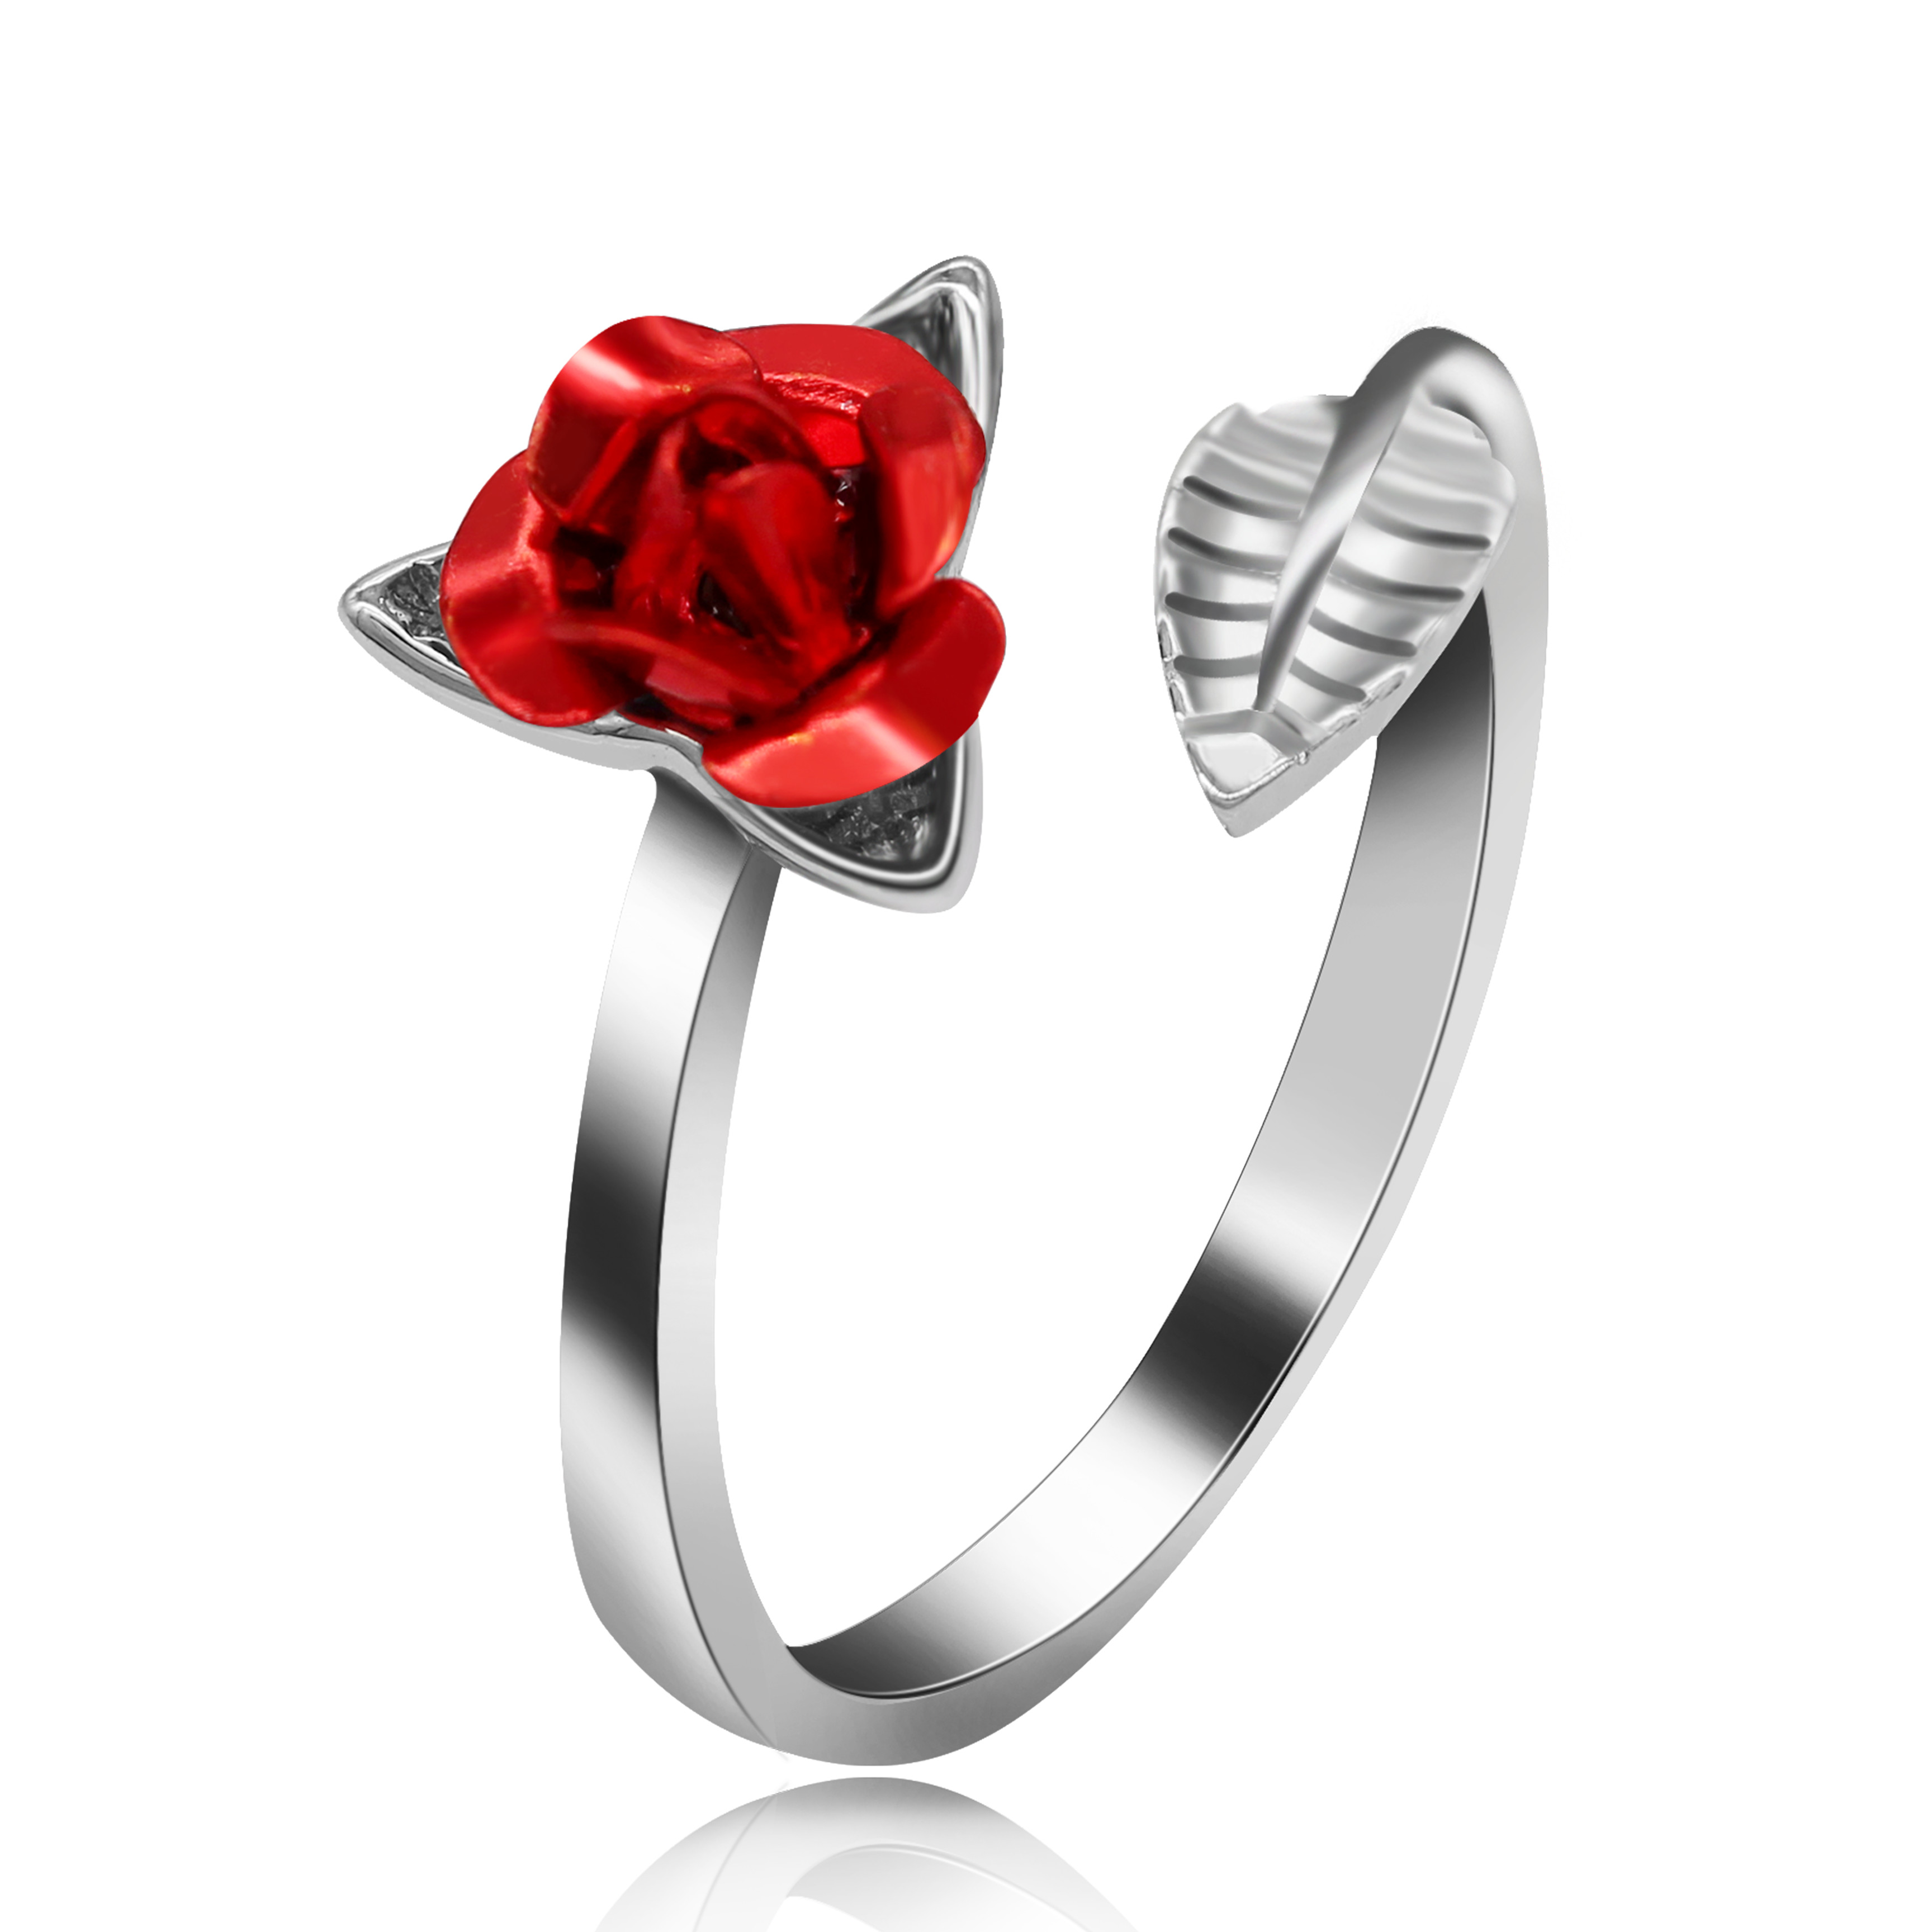 USPS Dropship Platinum Plated Women's Rose Flower Open Ring, Engagement Jewlery for Lady, Y531 Y534 Y535(China)